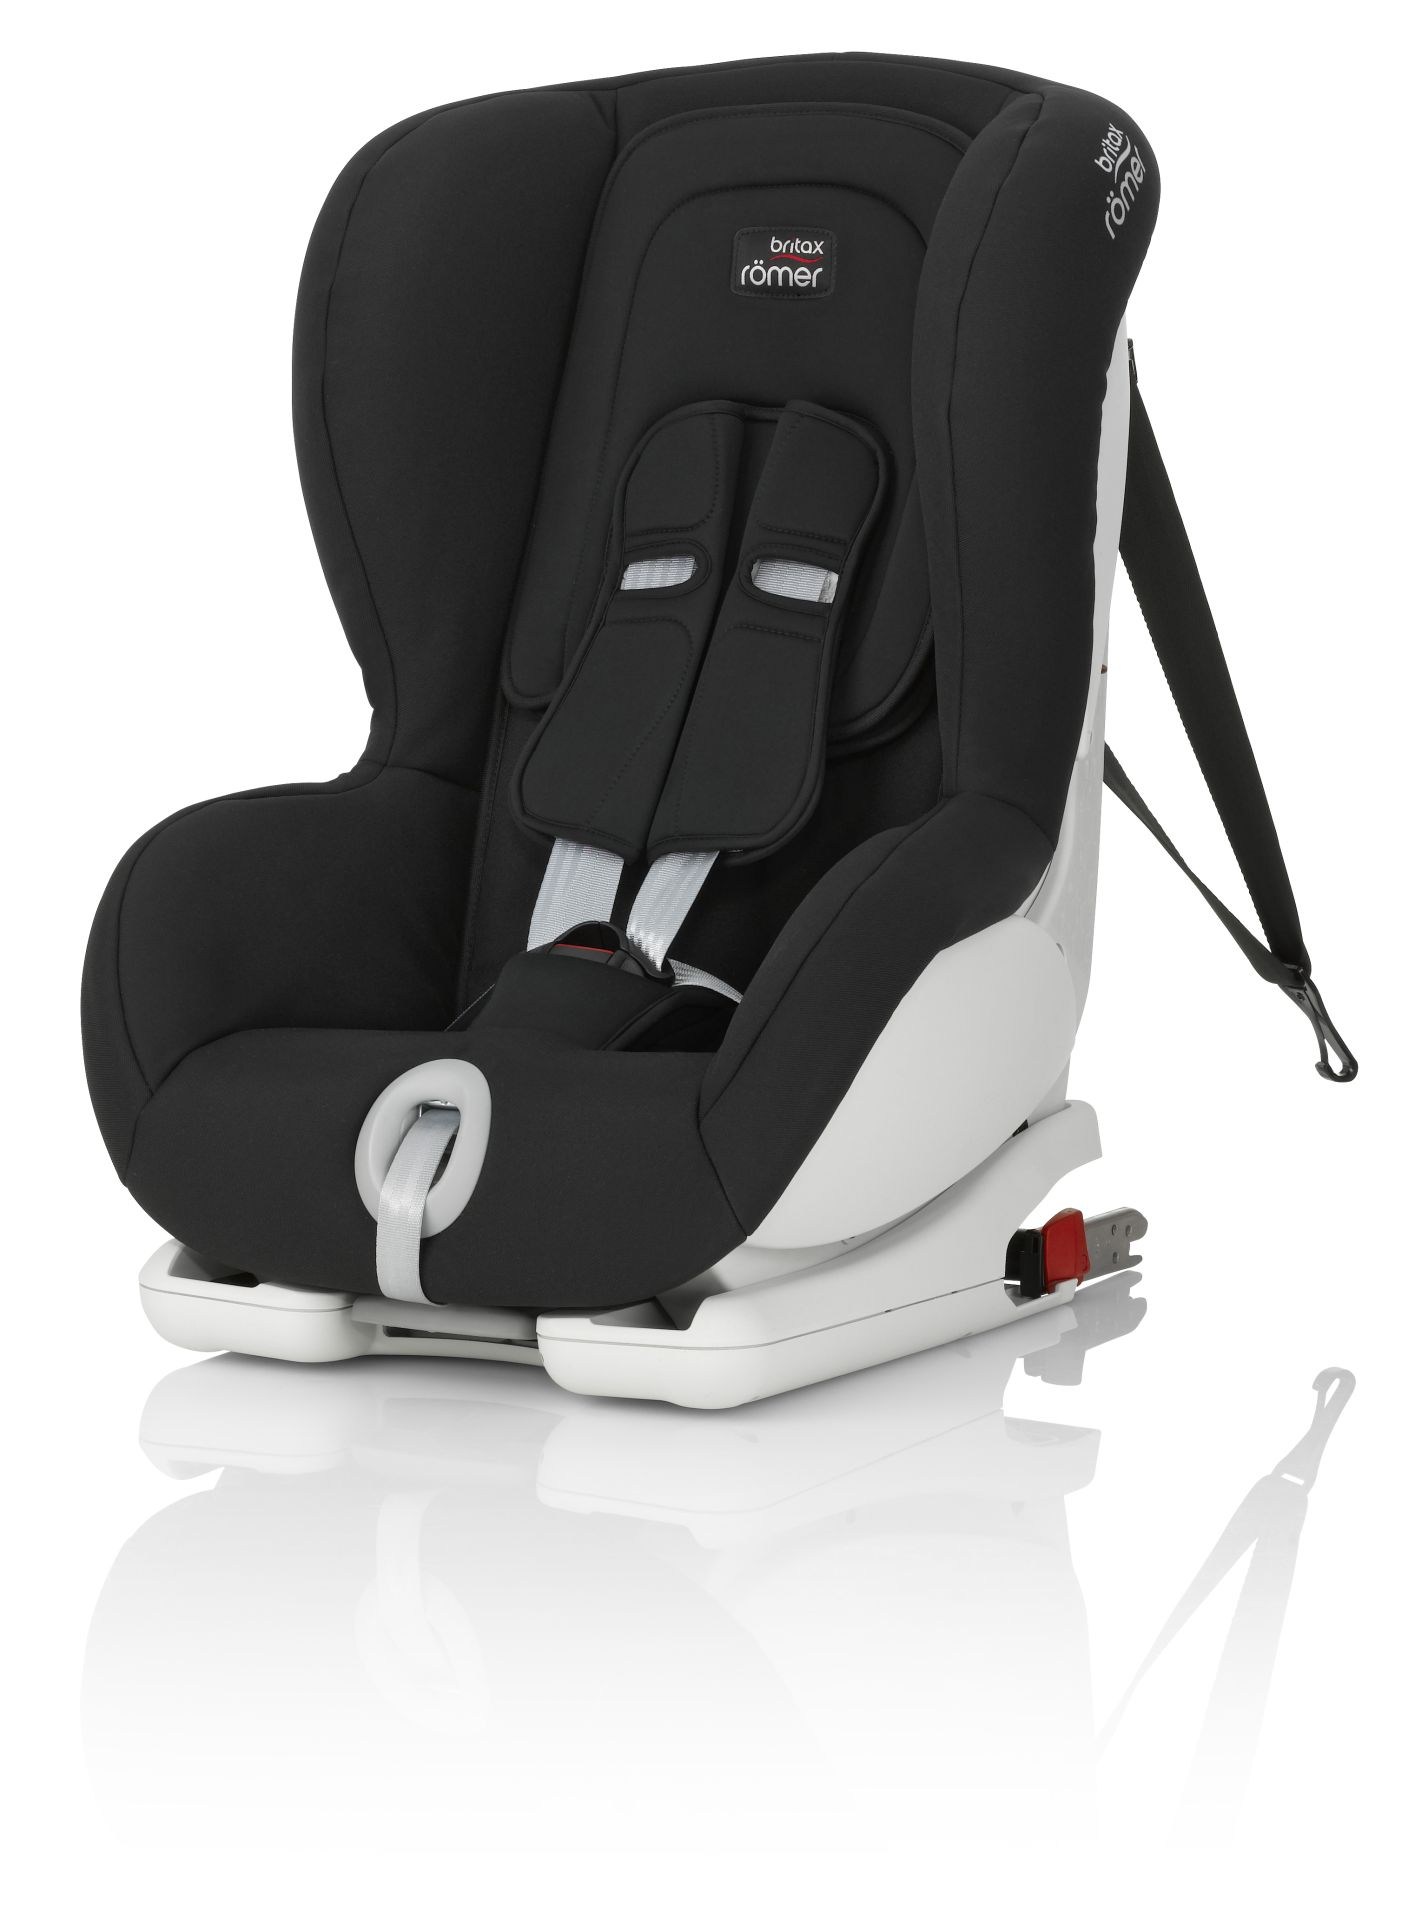 britax r mer child car seat versafix 2018 cosmos black buy at kidsroom car seats isofix. Black Bedroom Furniture Sets. Home Design Ideas